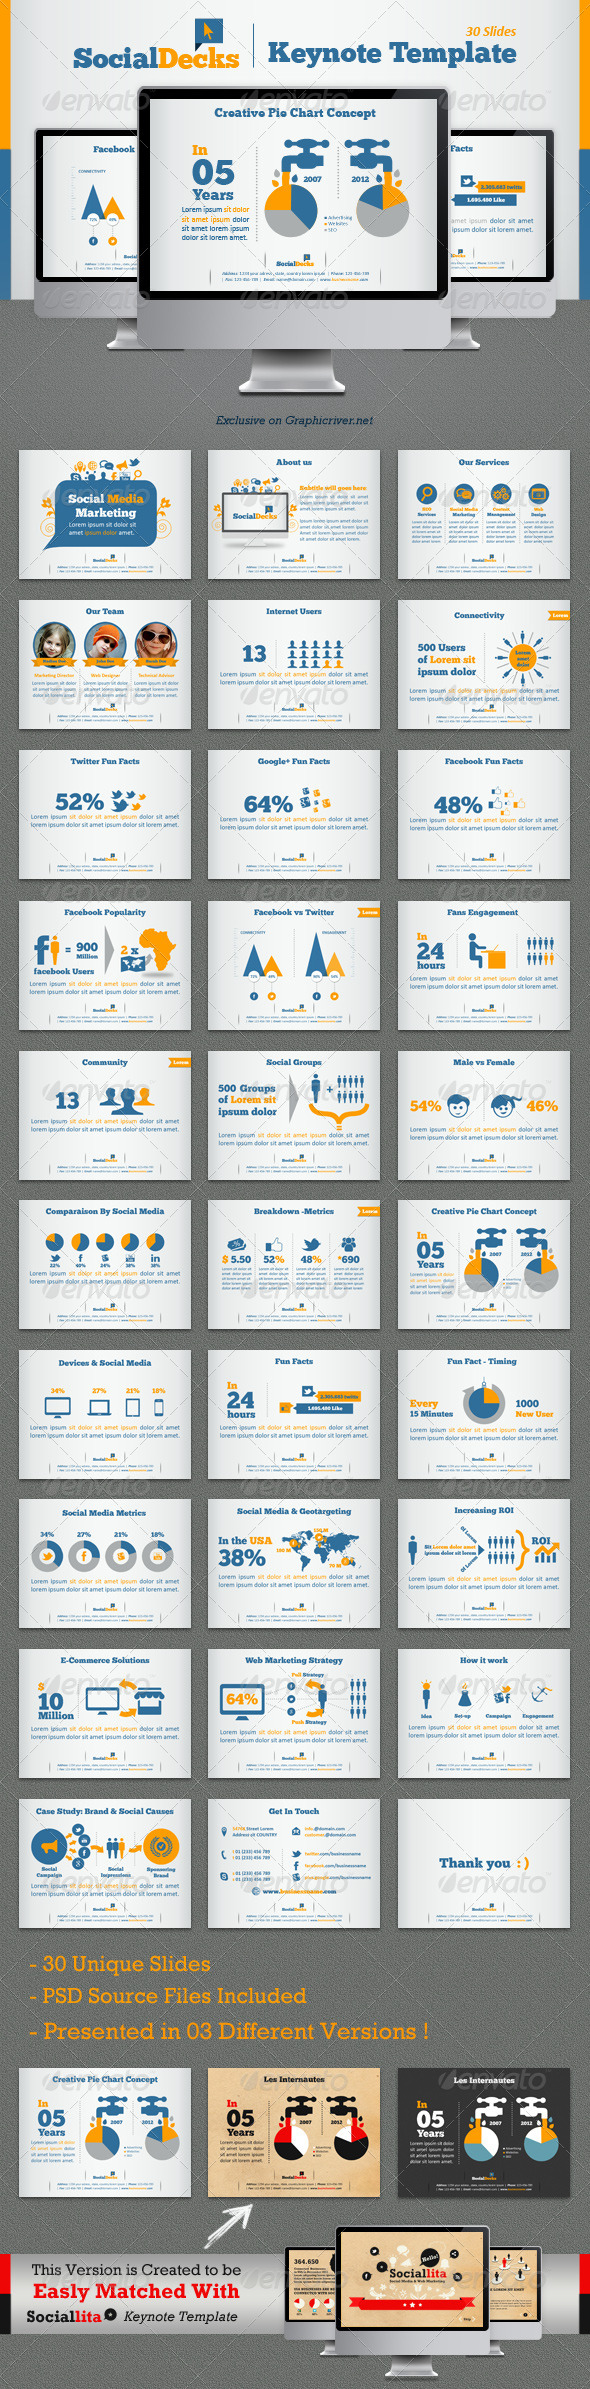 GraphicRiver SocialDecks Keynote Template 4456737